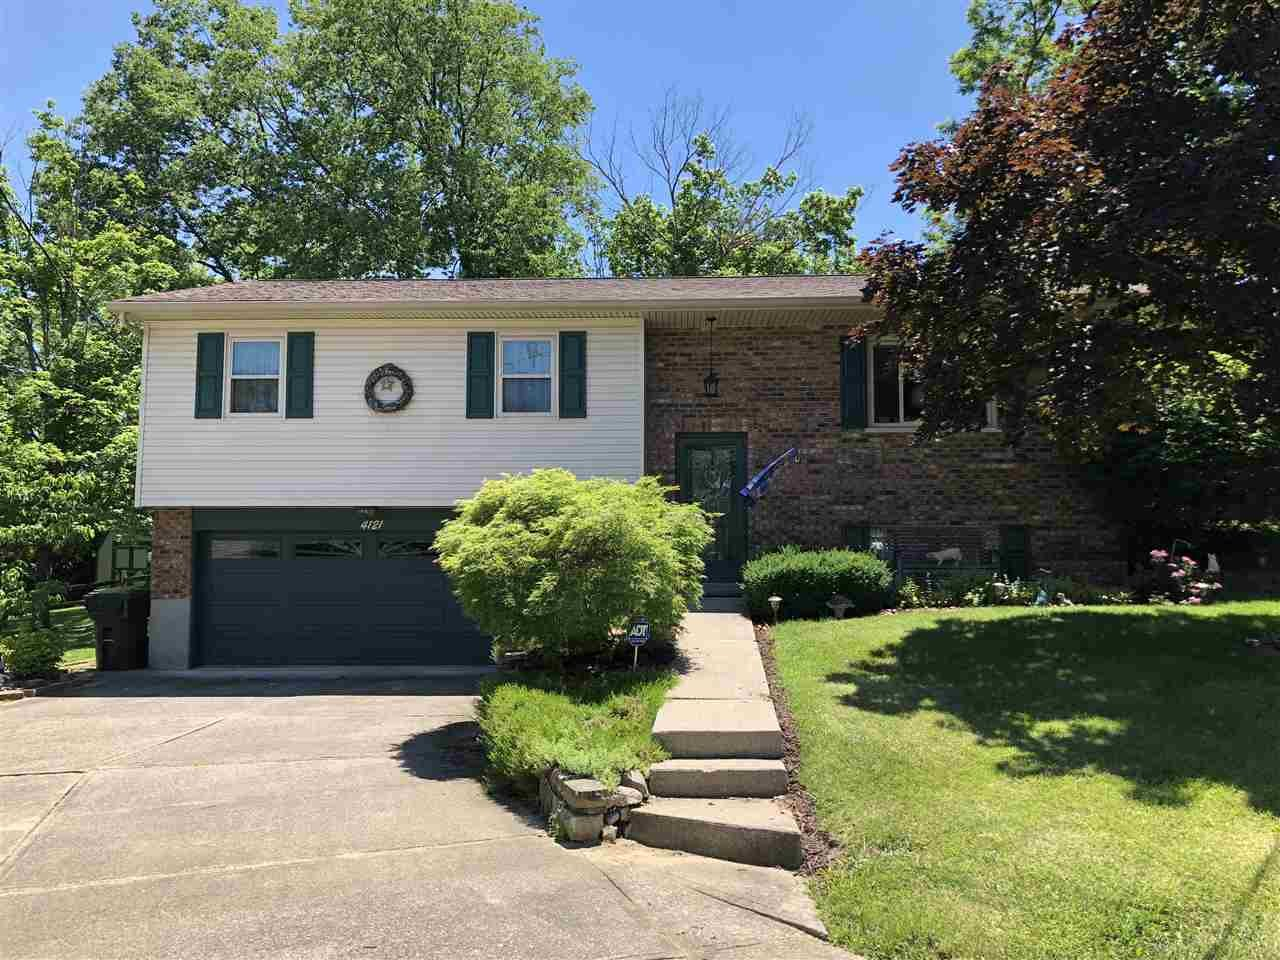 sell my erlanger house fast - we buy nky houses